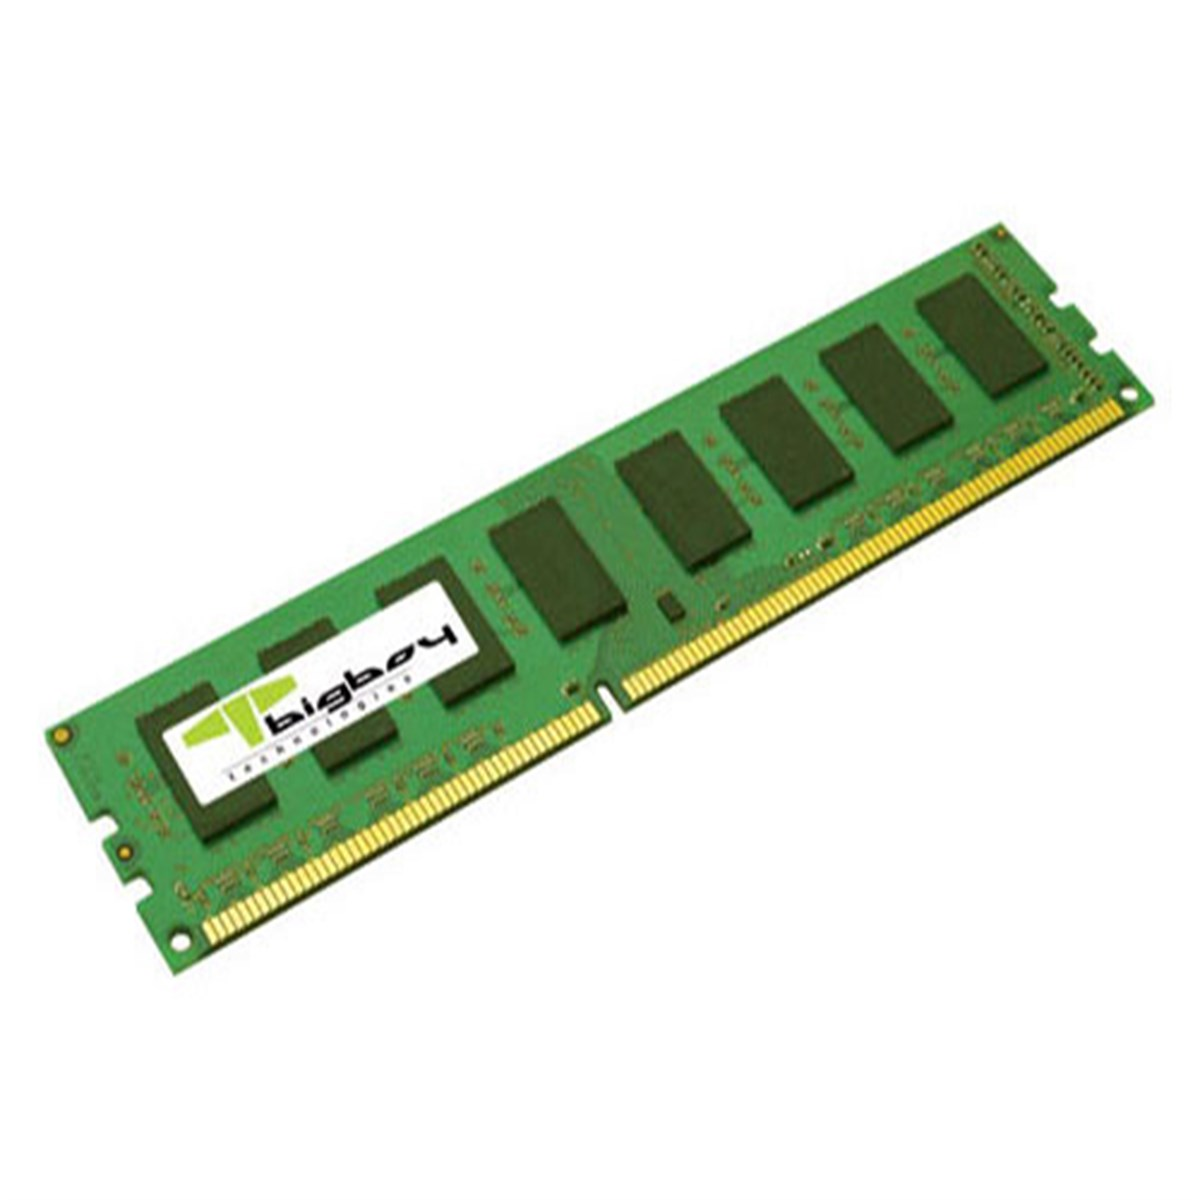 BIGBOY BST116LV-16G 16GB 1600 MHZ DDR3 CL11 LV SERVER RAM